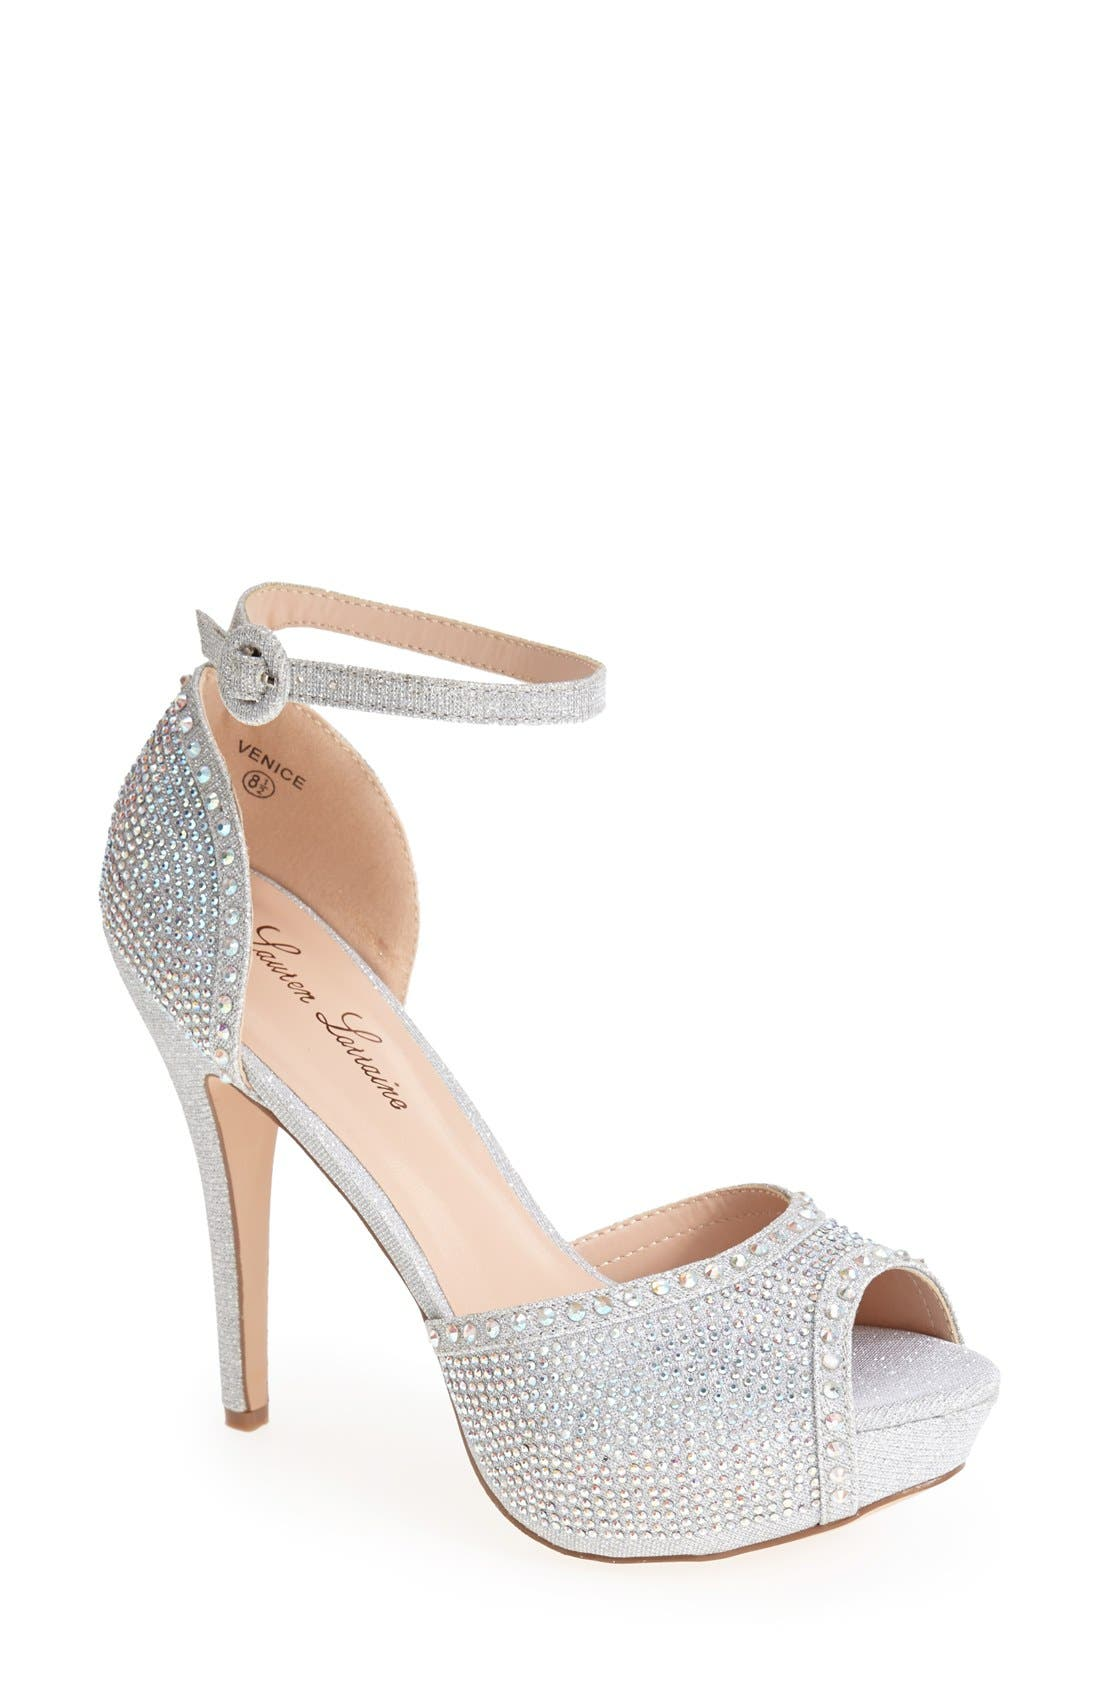 Alternate Image 1 Selected - Lauren Lorraine 'Venice' Ankle Strap Platform Sandal (Women)